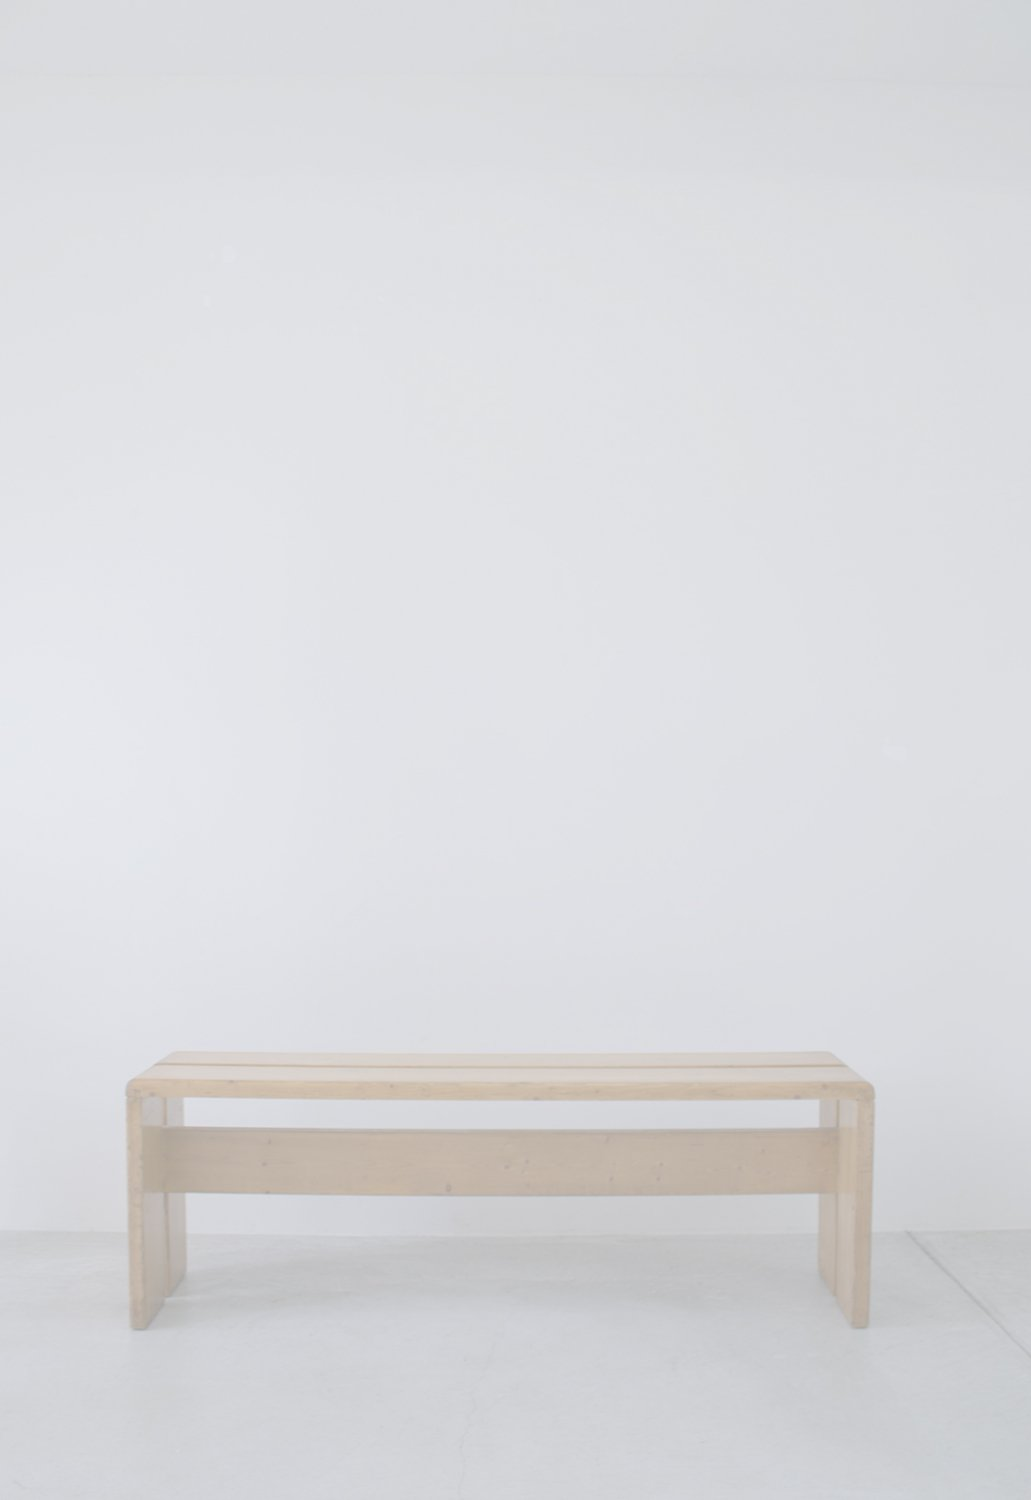 Charlotte Perriand Pine Stools for Les Arcs